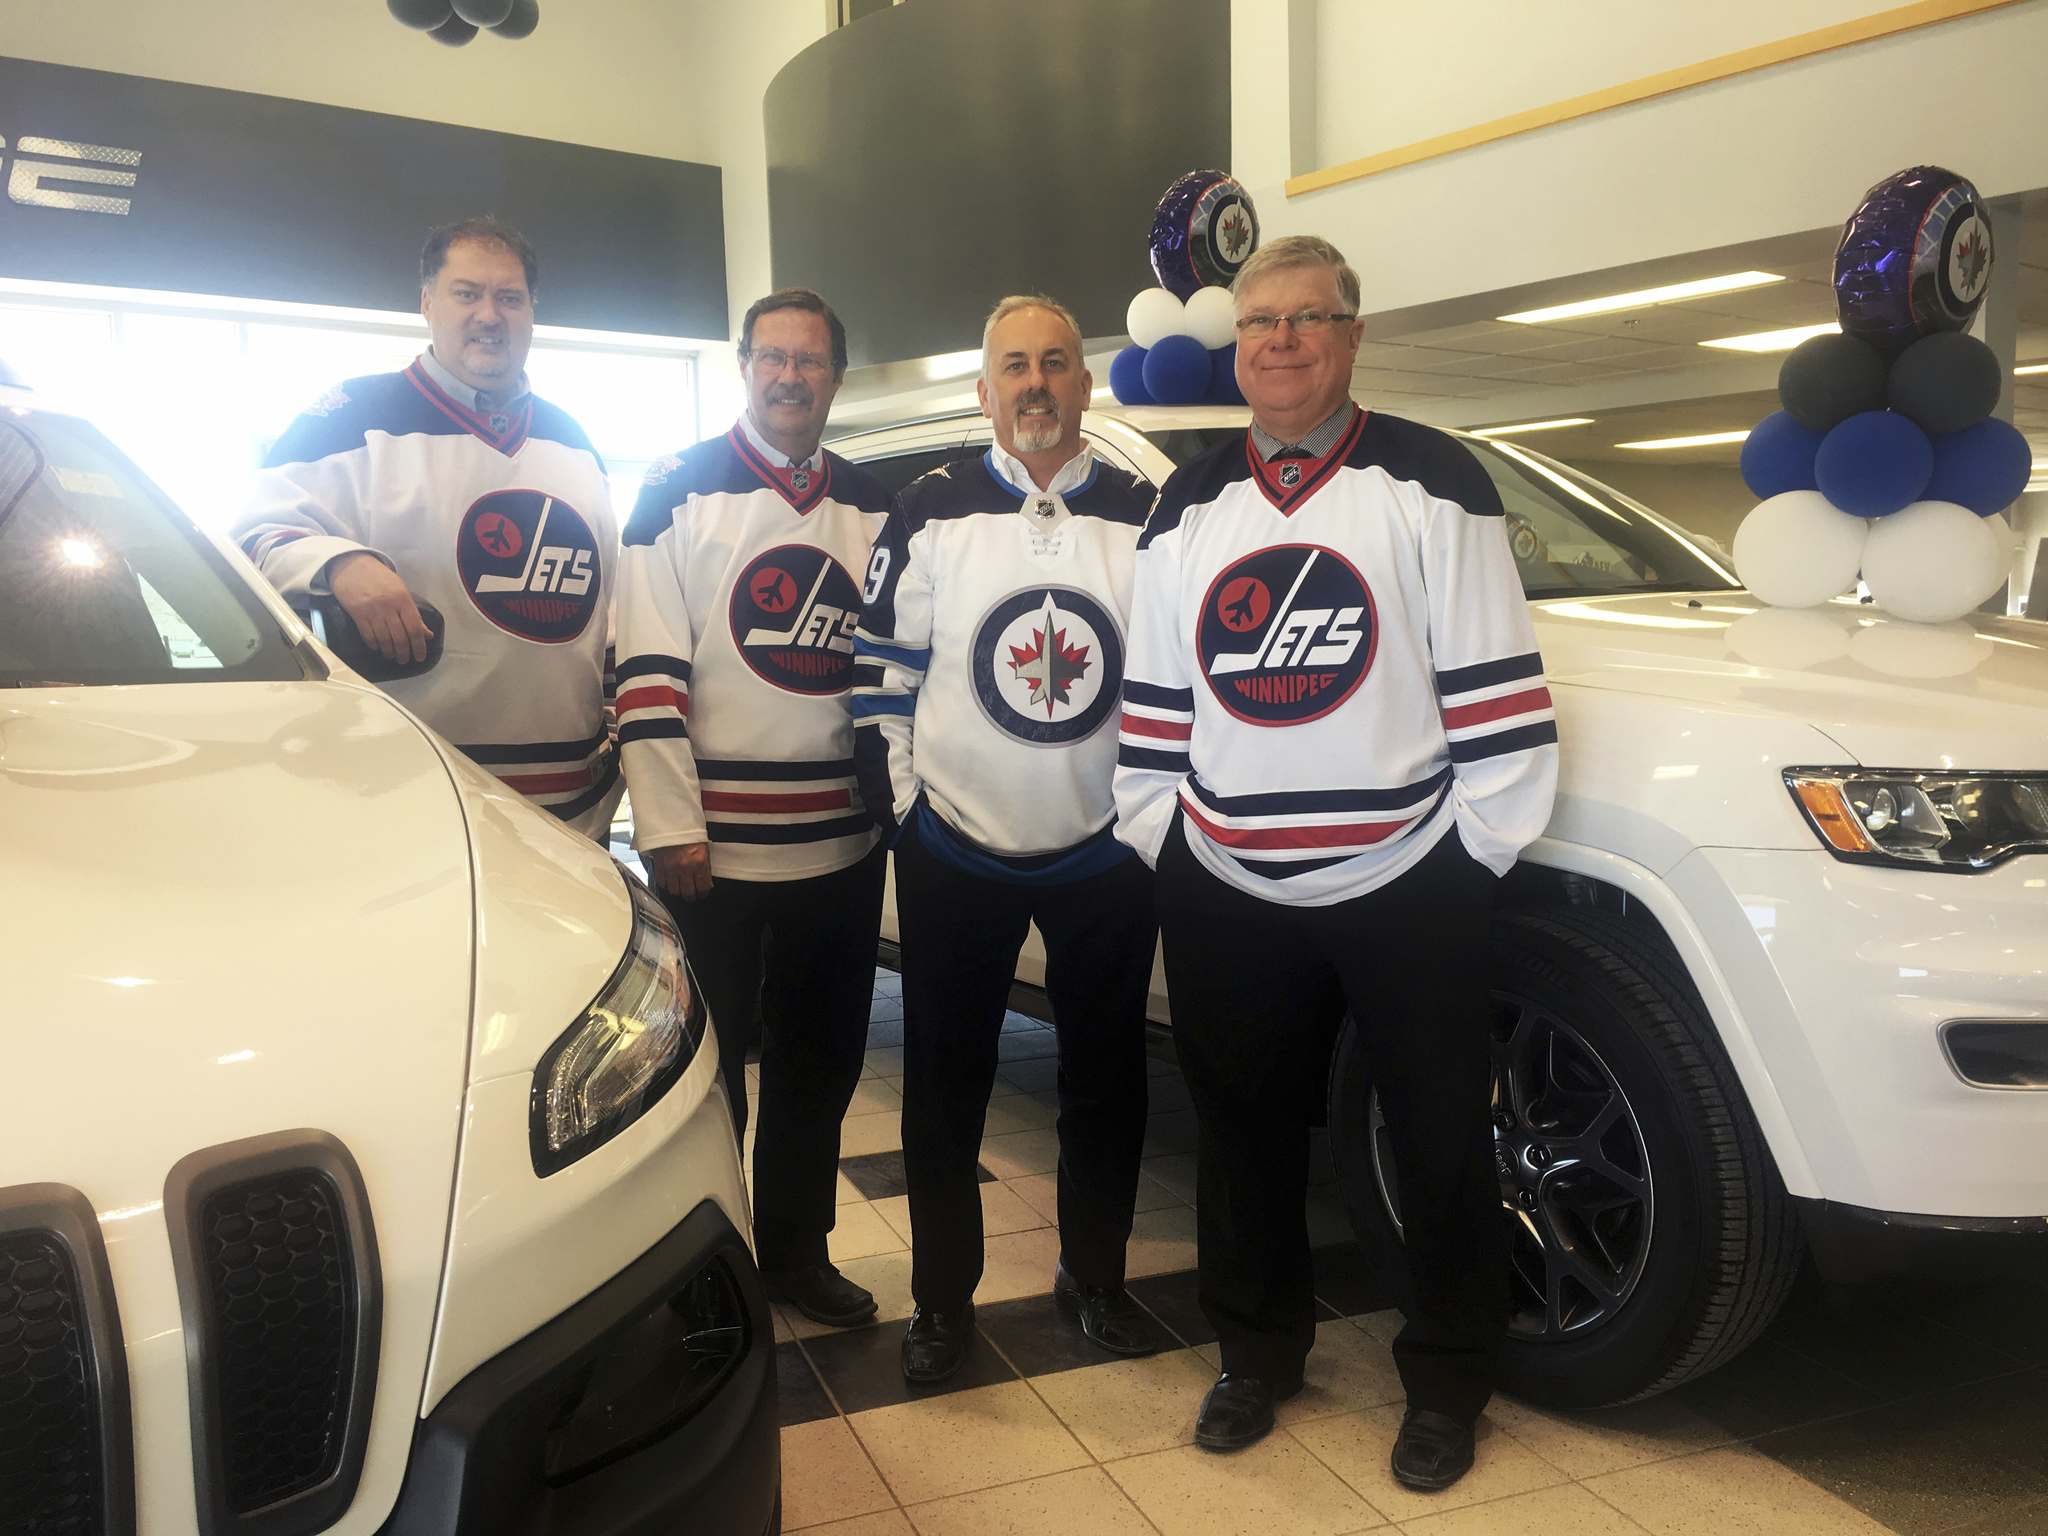 Willy Williamson / Winnipeg Free PressFrom left: Bryan Ambrozik, Marc Letourneau, Kevin Schumacher and Barry Olinkin from Gauthier Chrysler in their whiteout showroom.